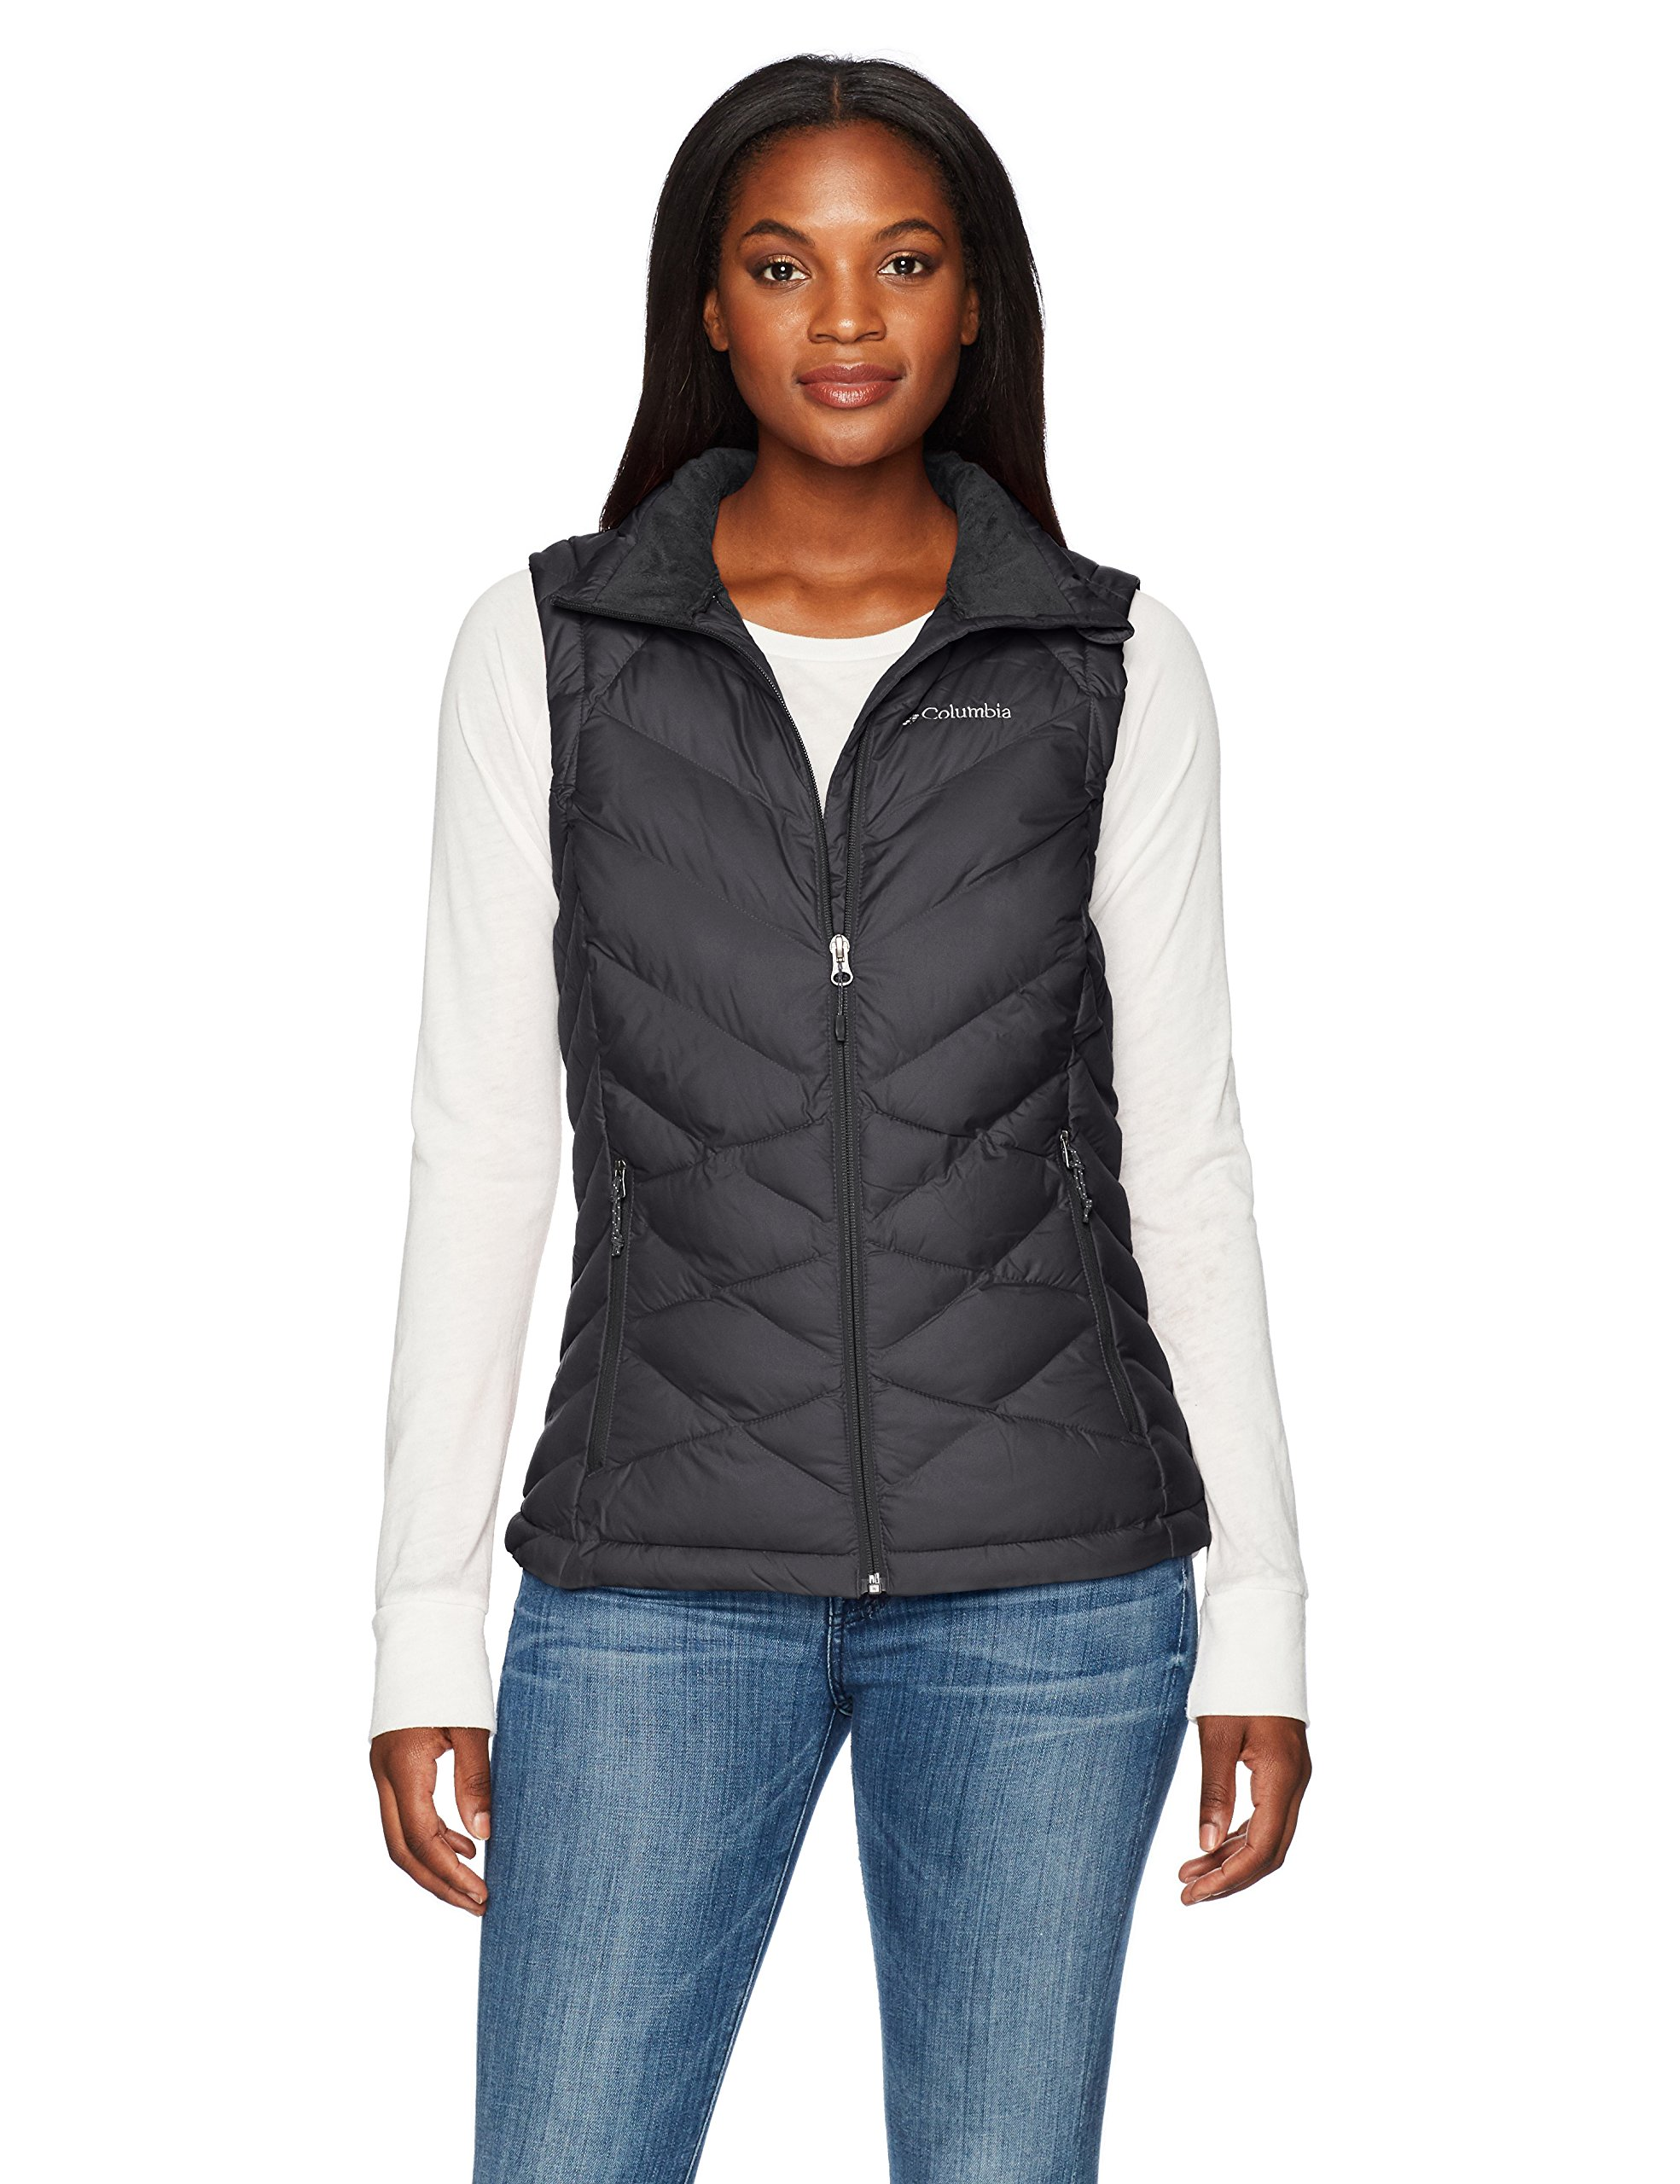 Columbia 1738141 Women's Heavenly Vest, Black, Large